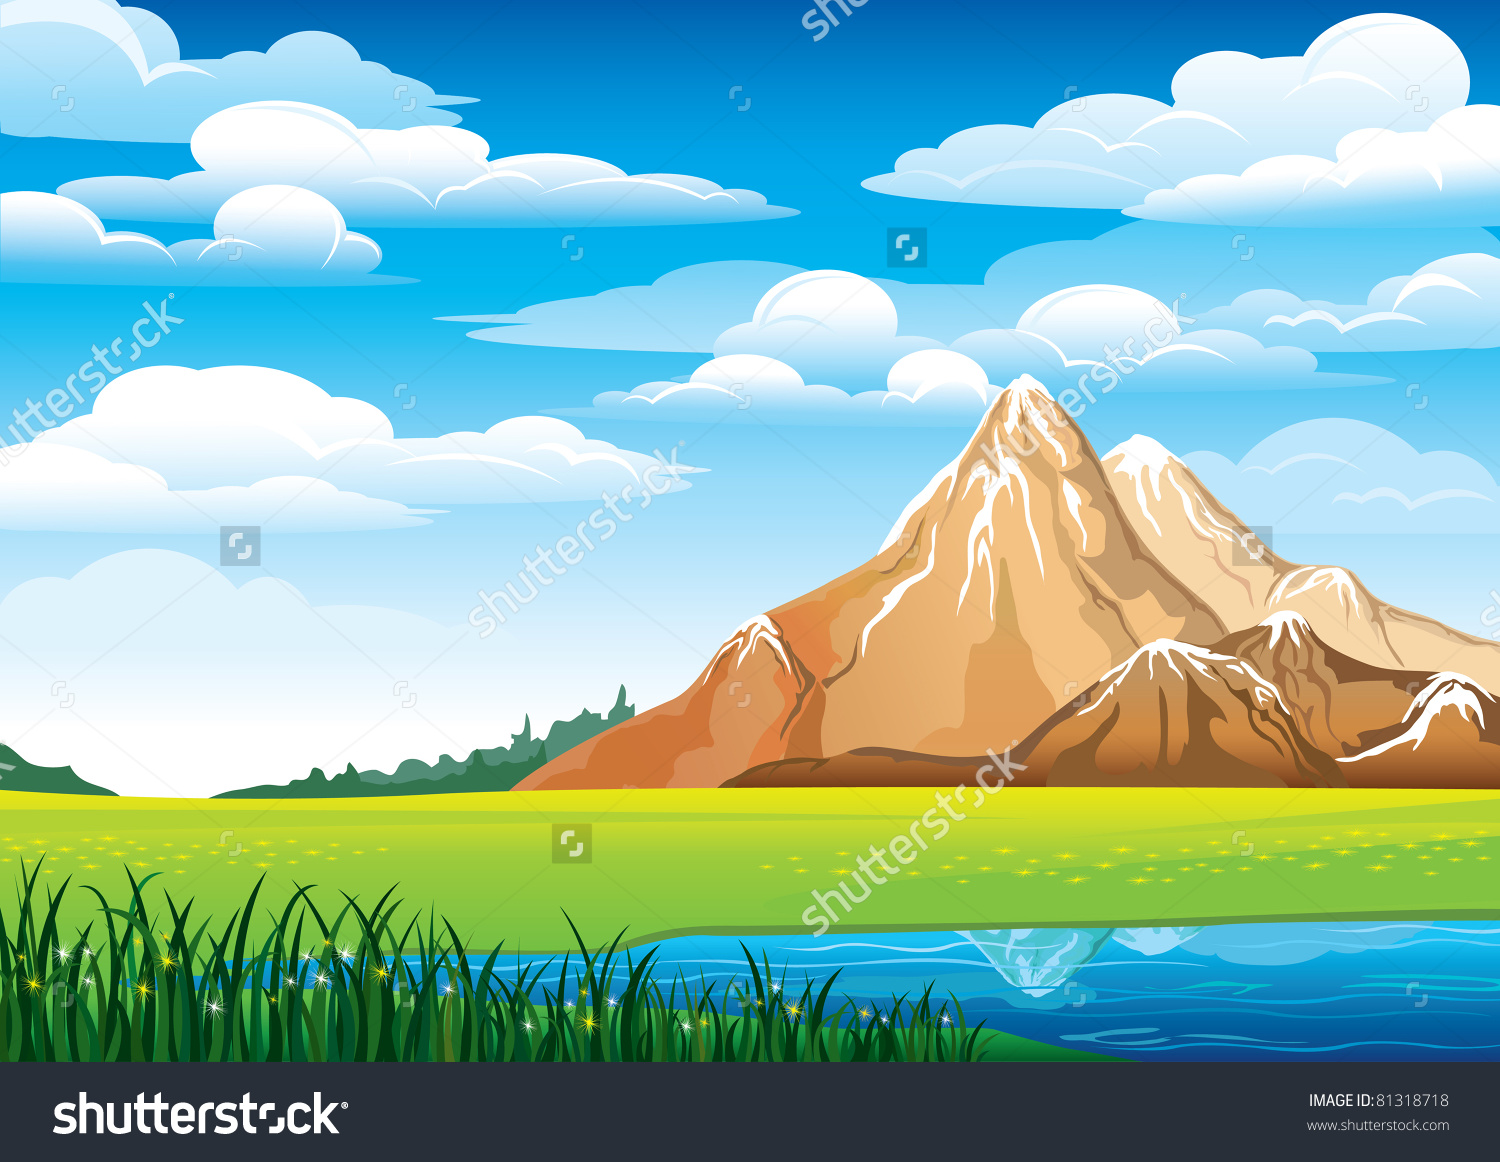 Green Landscape Meadow Blue Lake Mountains Stock Vector 81318718.